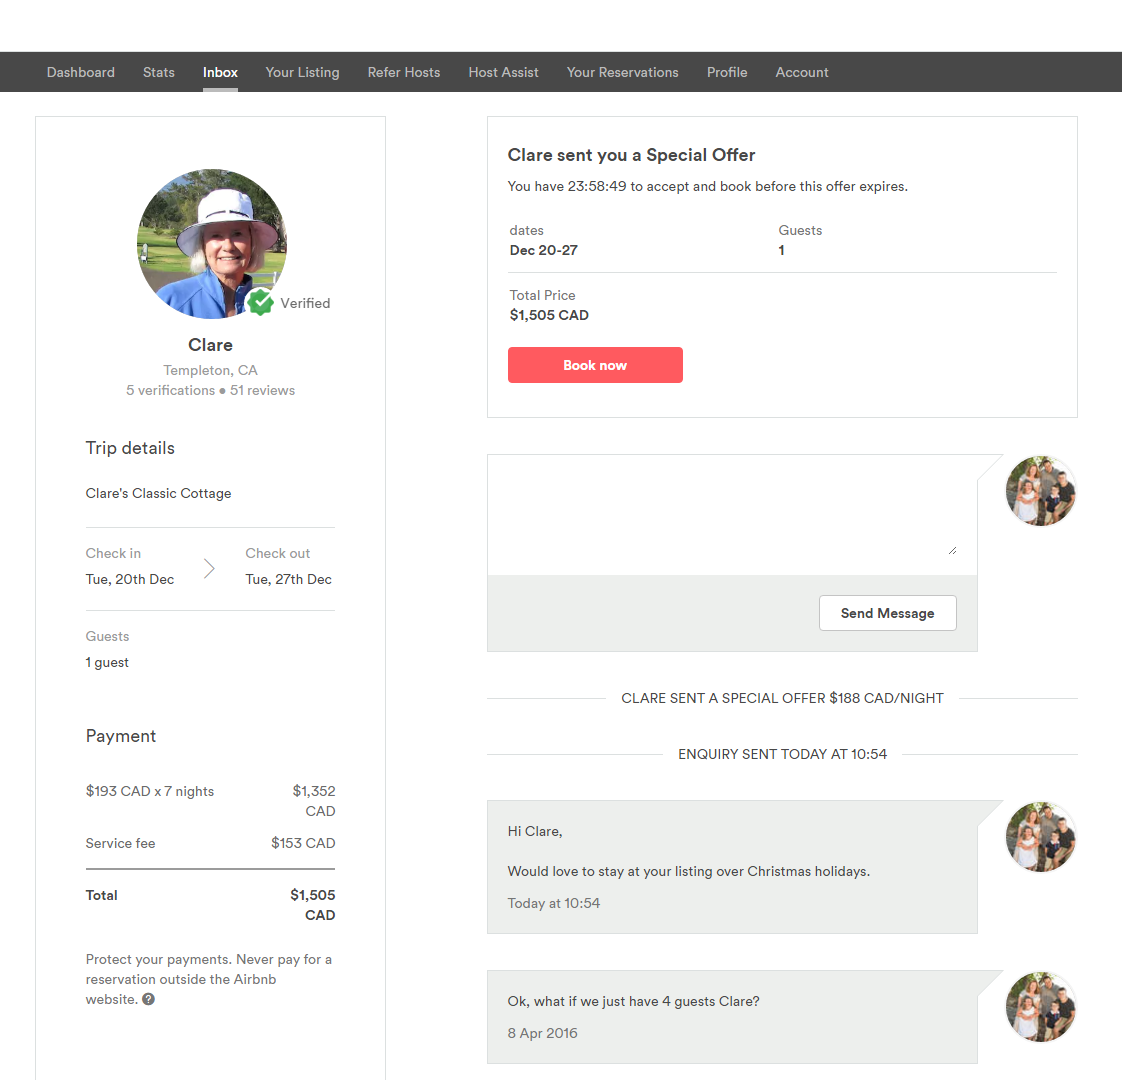 Special Offers A Community Help Guide Updated Airbnb Community